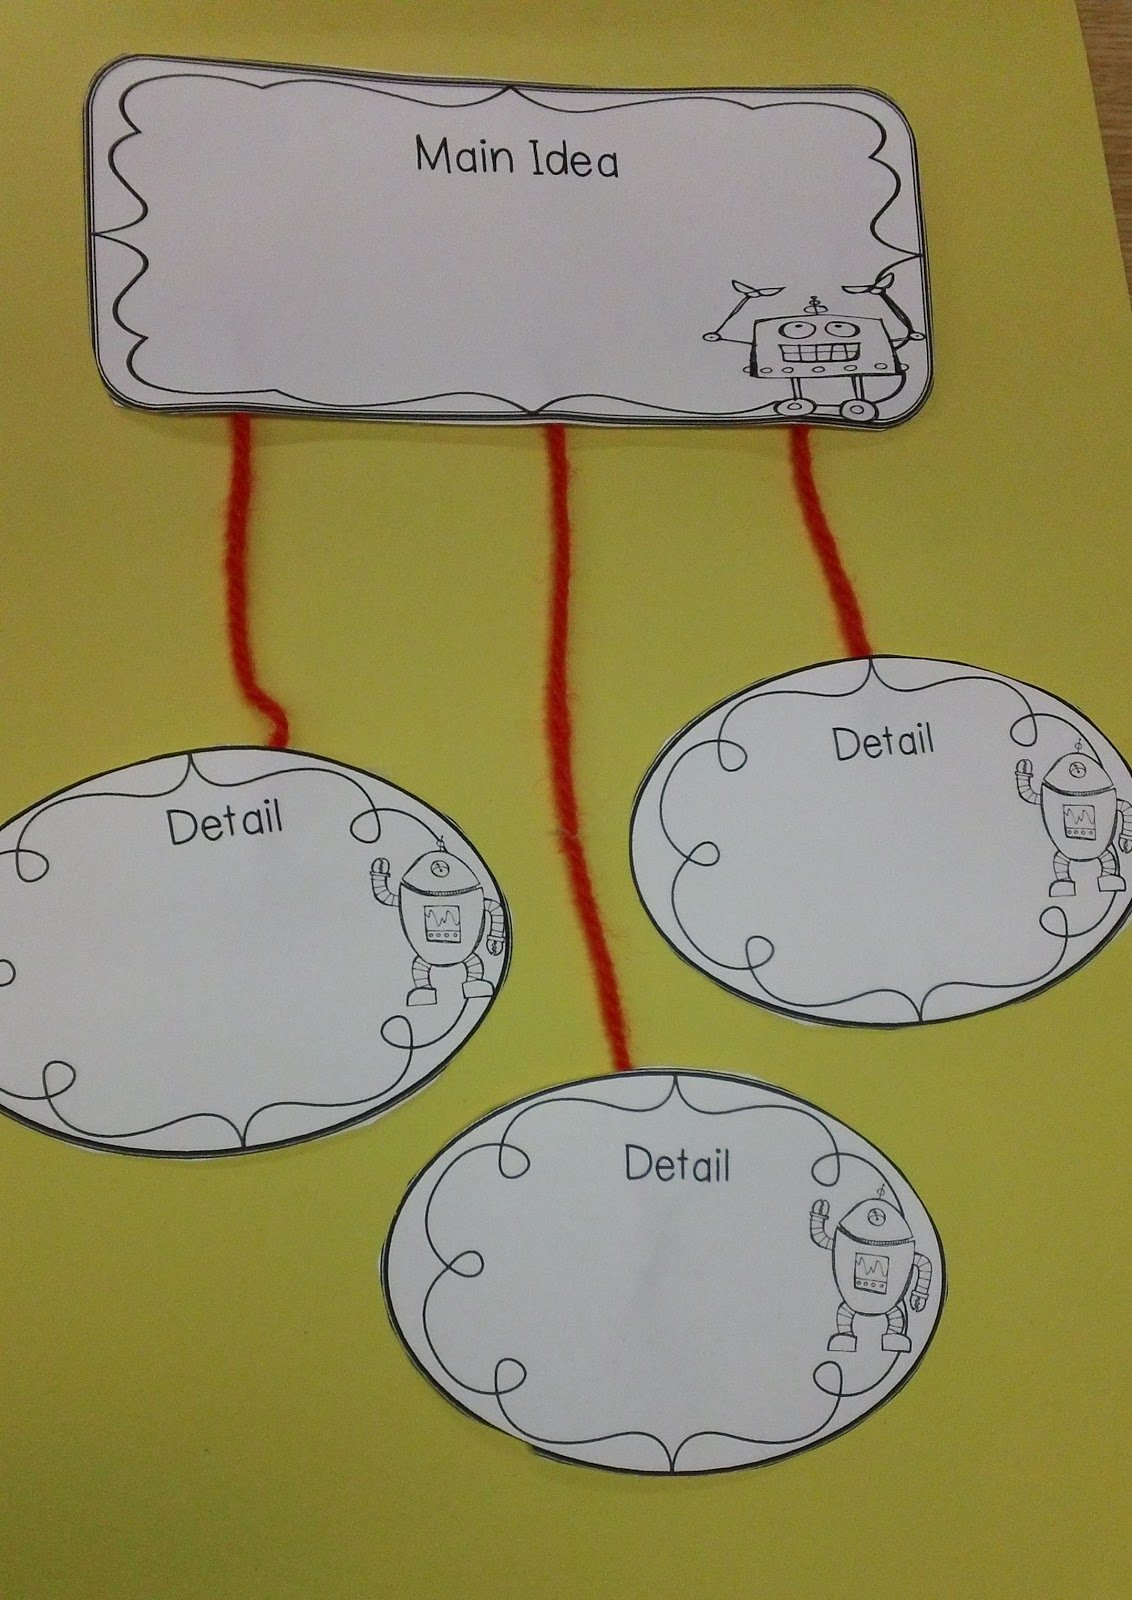 10 Most Recommended Main Idea Lesson Plans 3Rd Grade stellar students main idea 5 2020